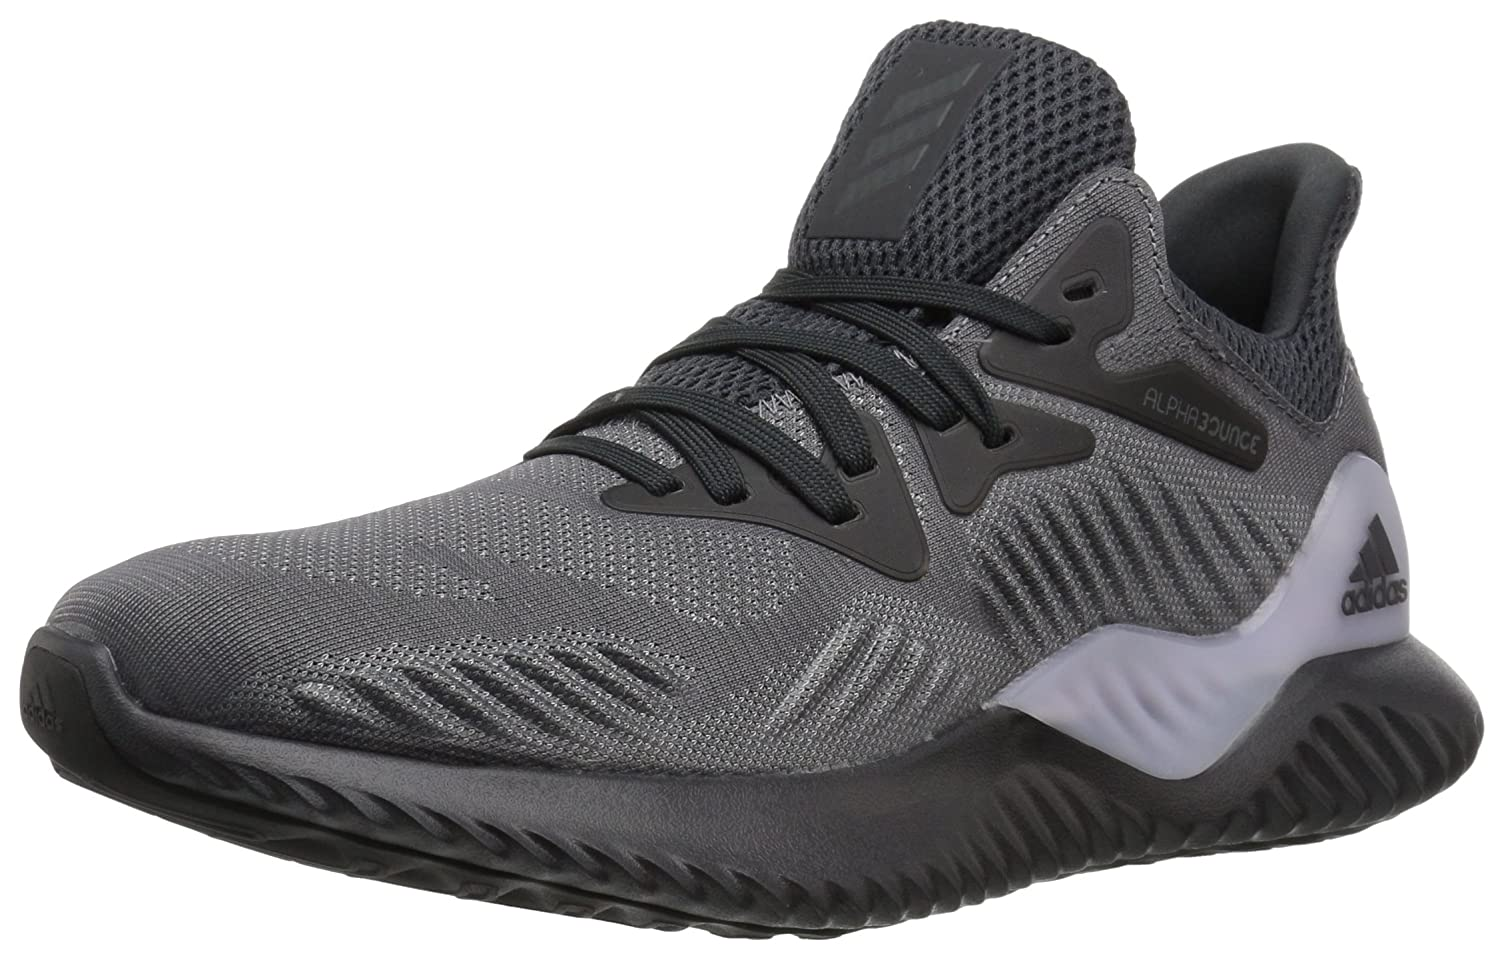 adidas Women's Alphabounce Beyond W Running Shoe B071LFC33M 9 B(M) US|Grey Four/Carbon/Dark Solid Grey